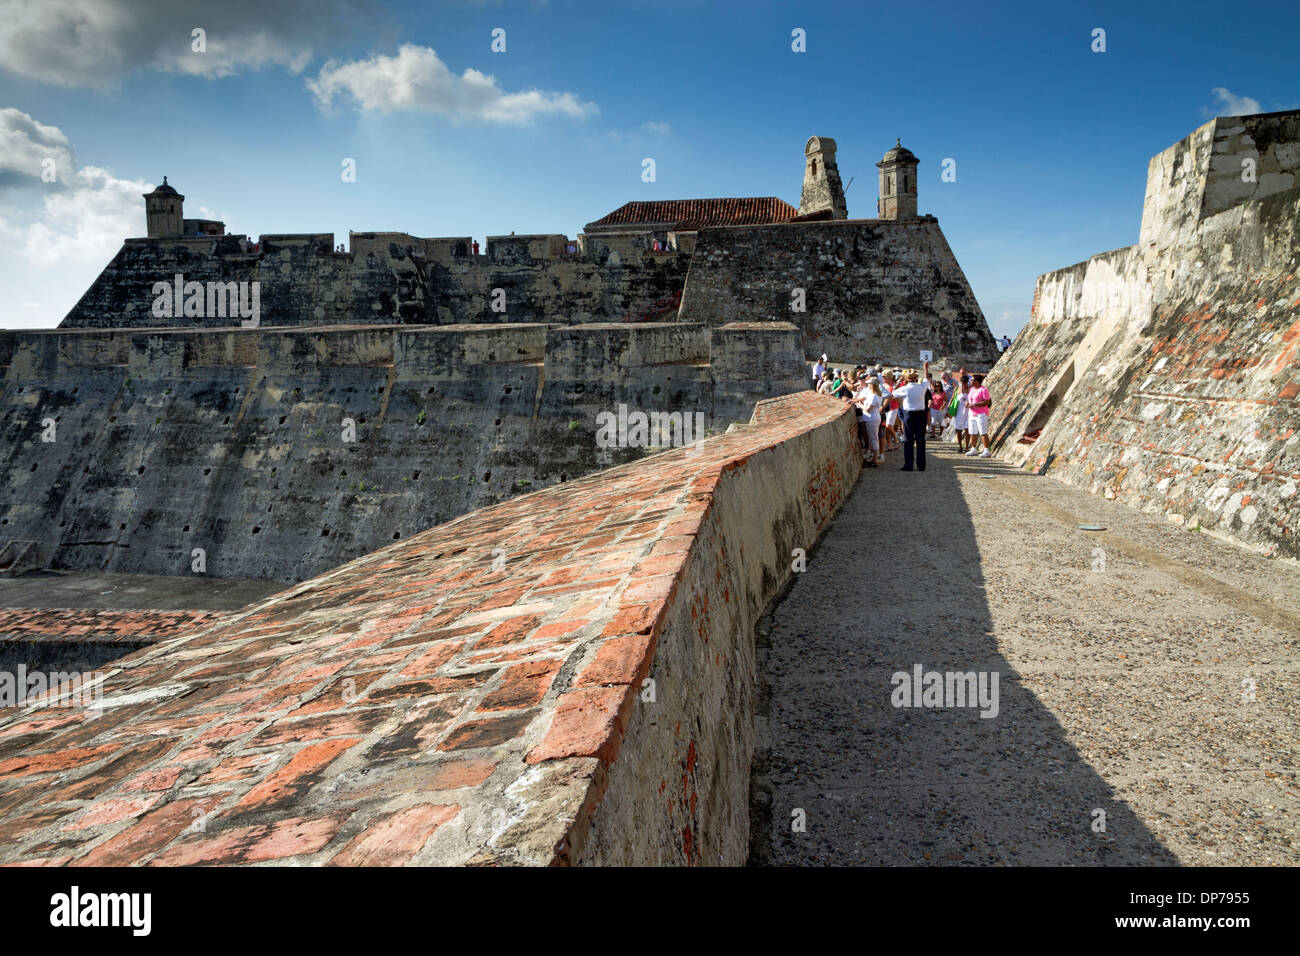 The fortress - Castillo San Felipe de Barajas - on the hill of San Lazaro towers above Cartagena city in Colombia - Stock Image